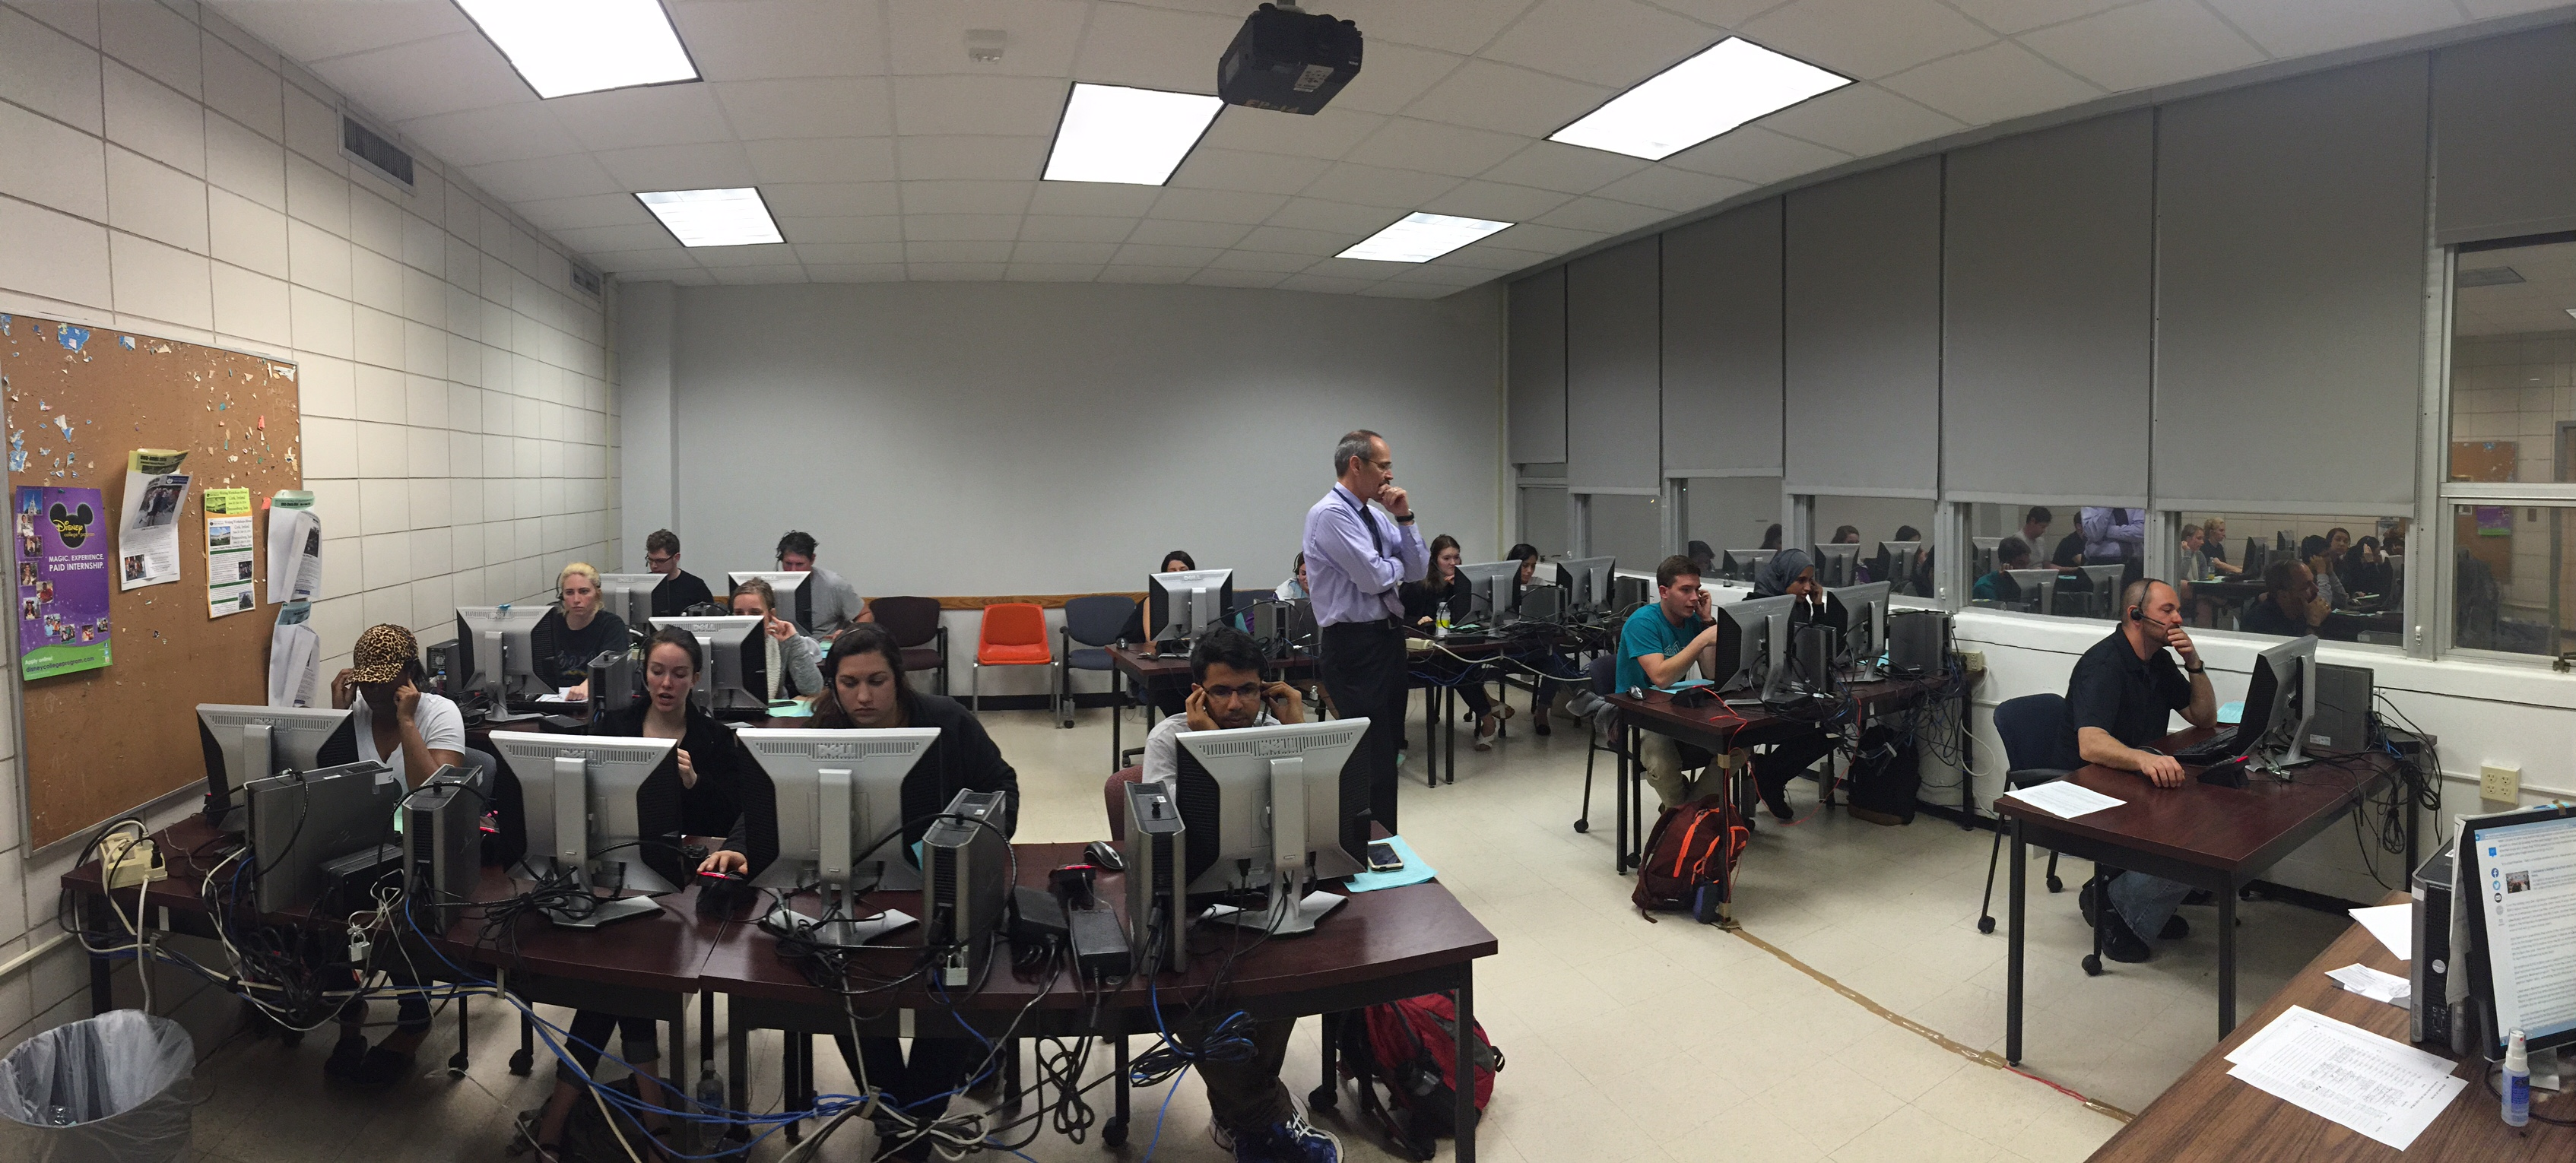 A class taking place inside of Milneburg Hall